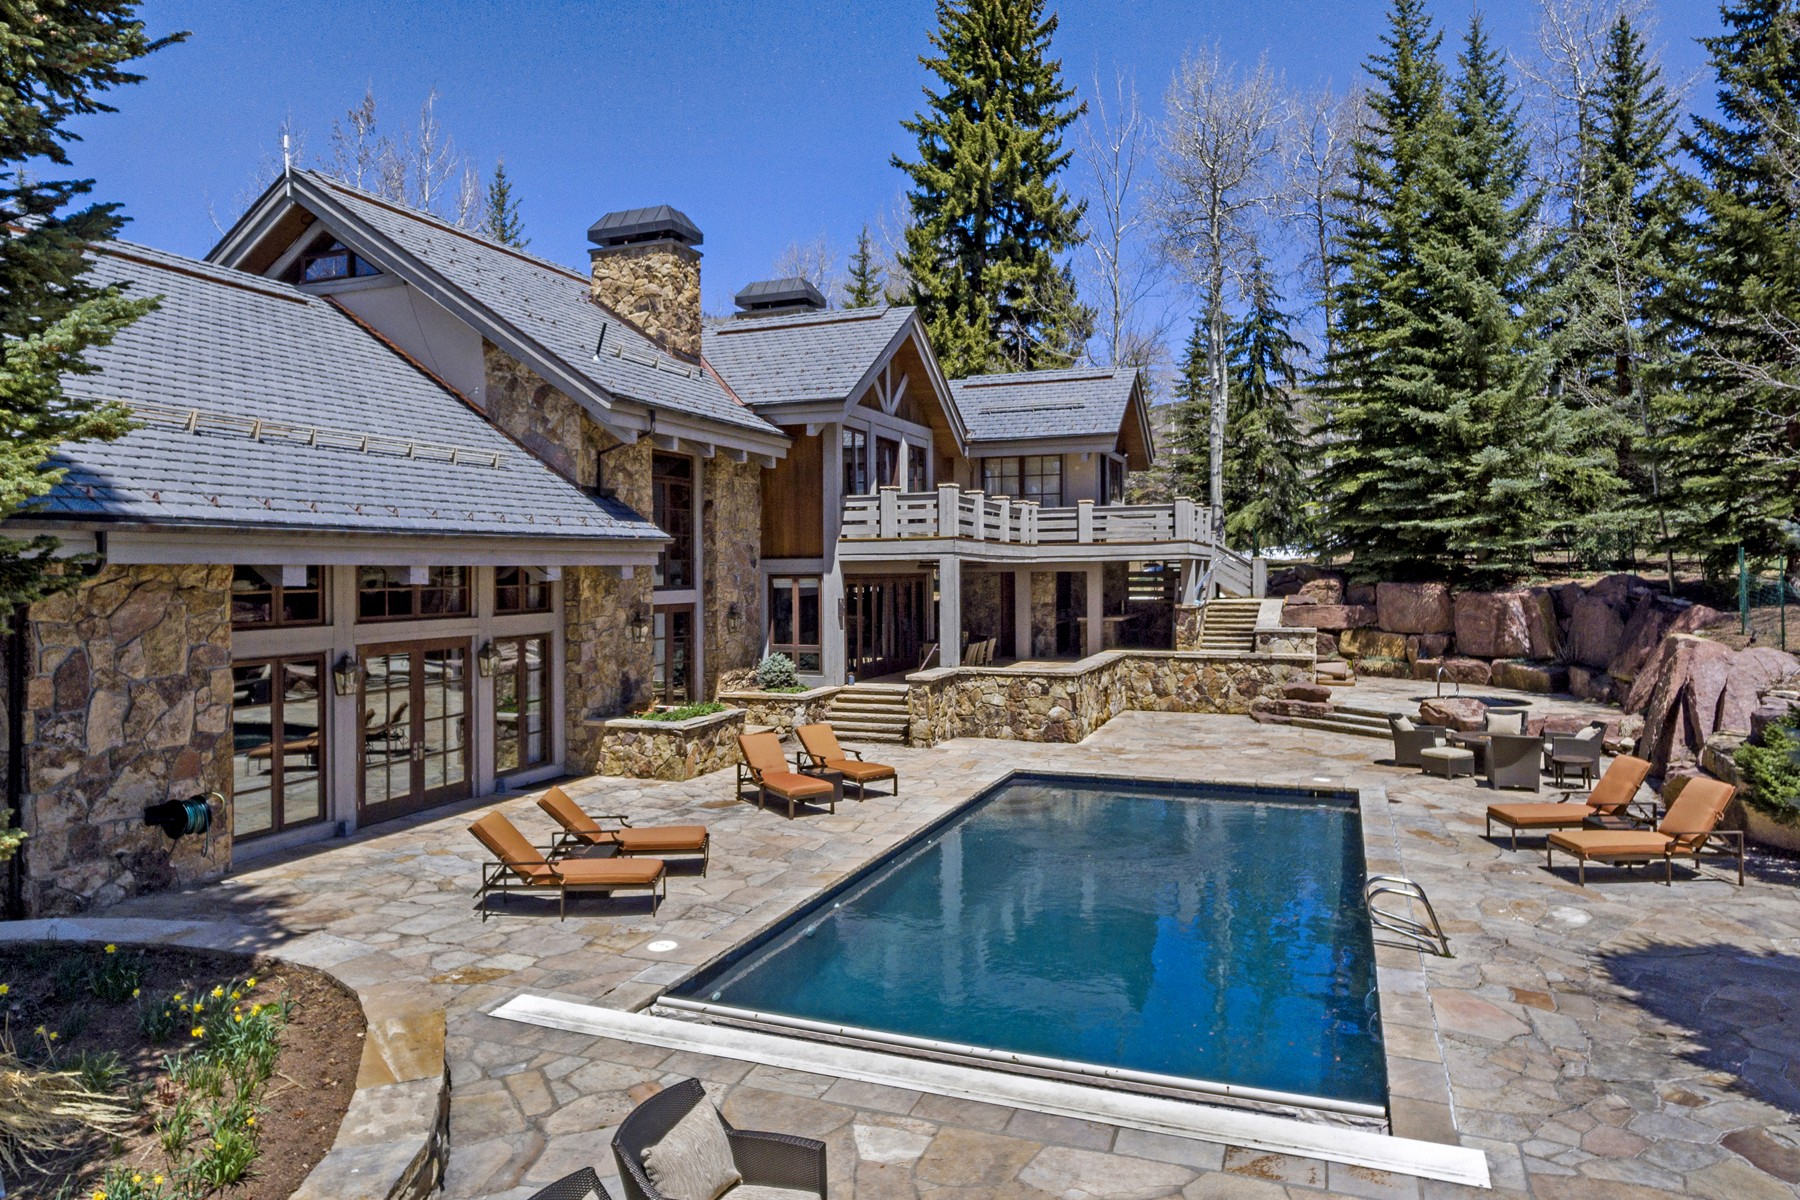 Single Family Homes for Sale at One of the Vail Valley's true estate homes offering spectacular outdoor living 18 Rose Crown Avon, Colorado 81620 United States